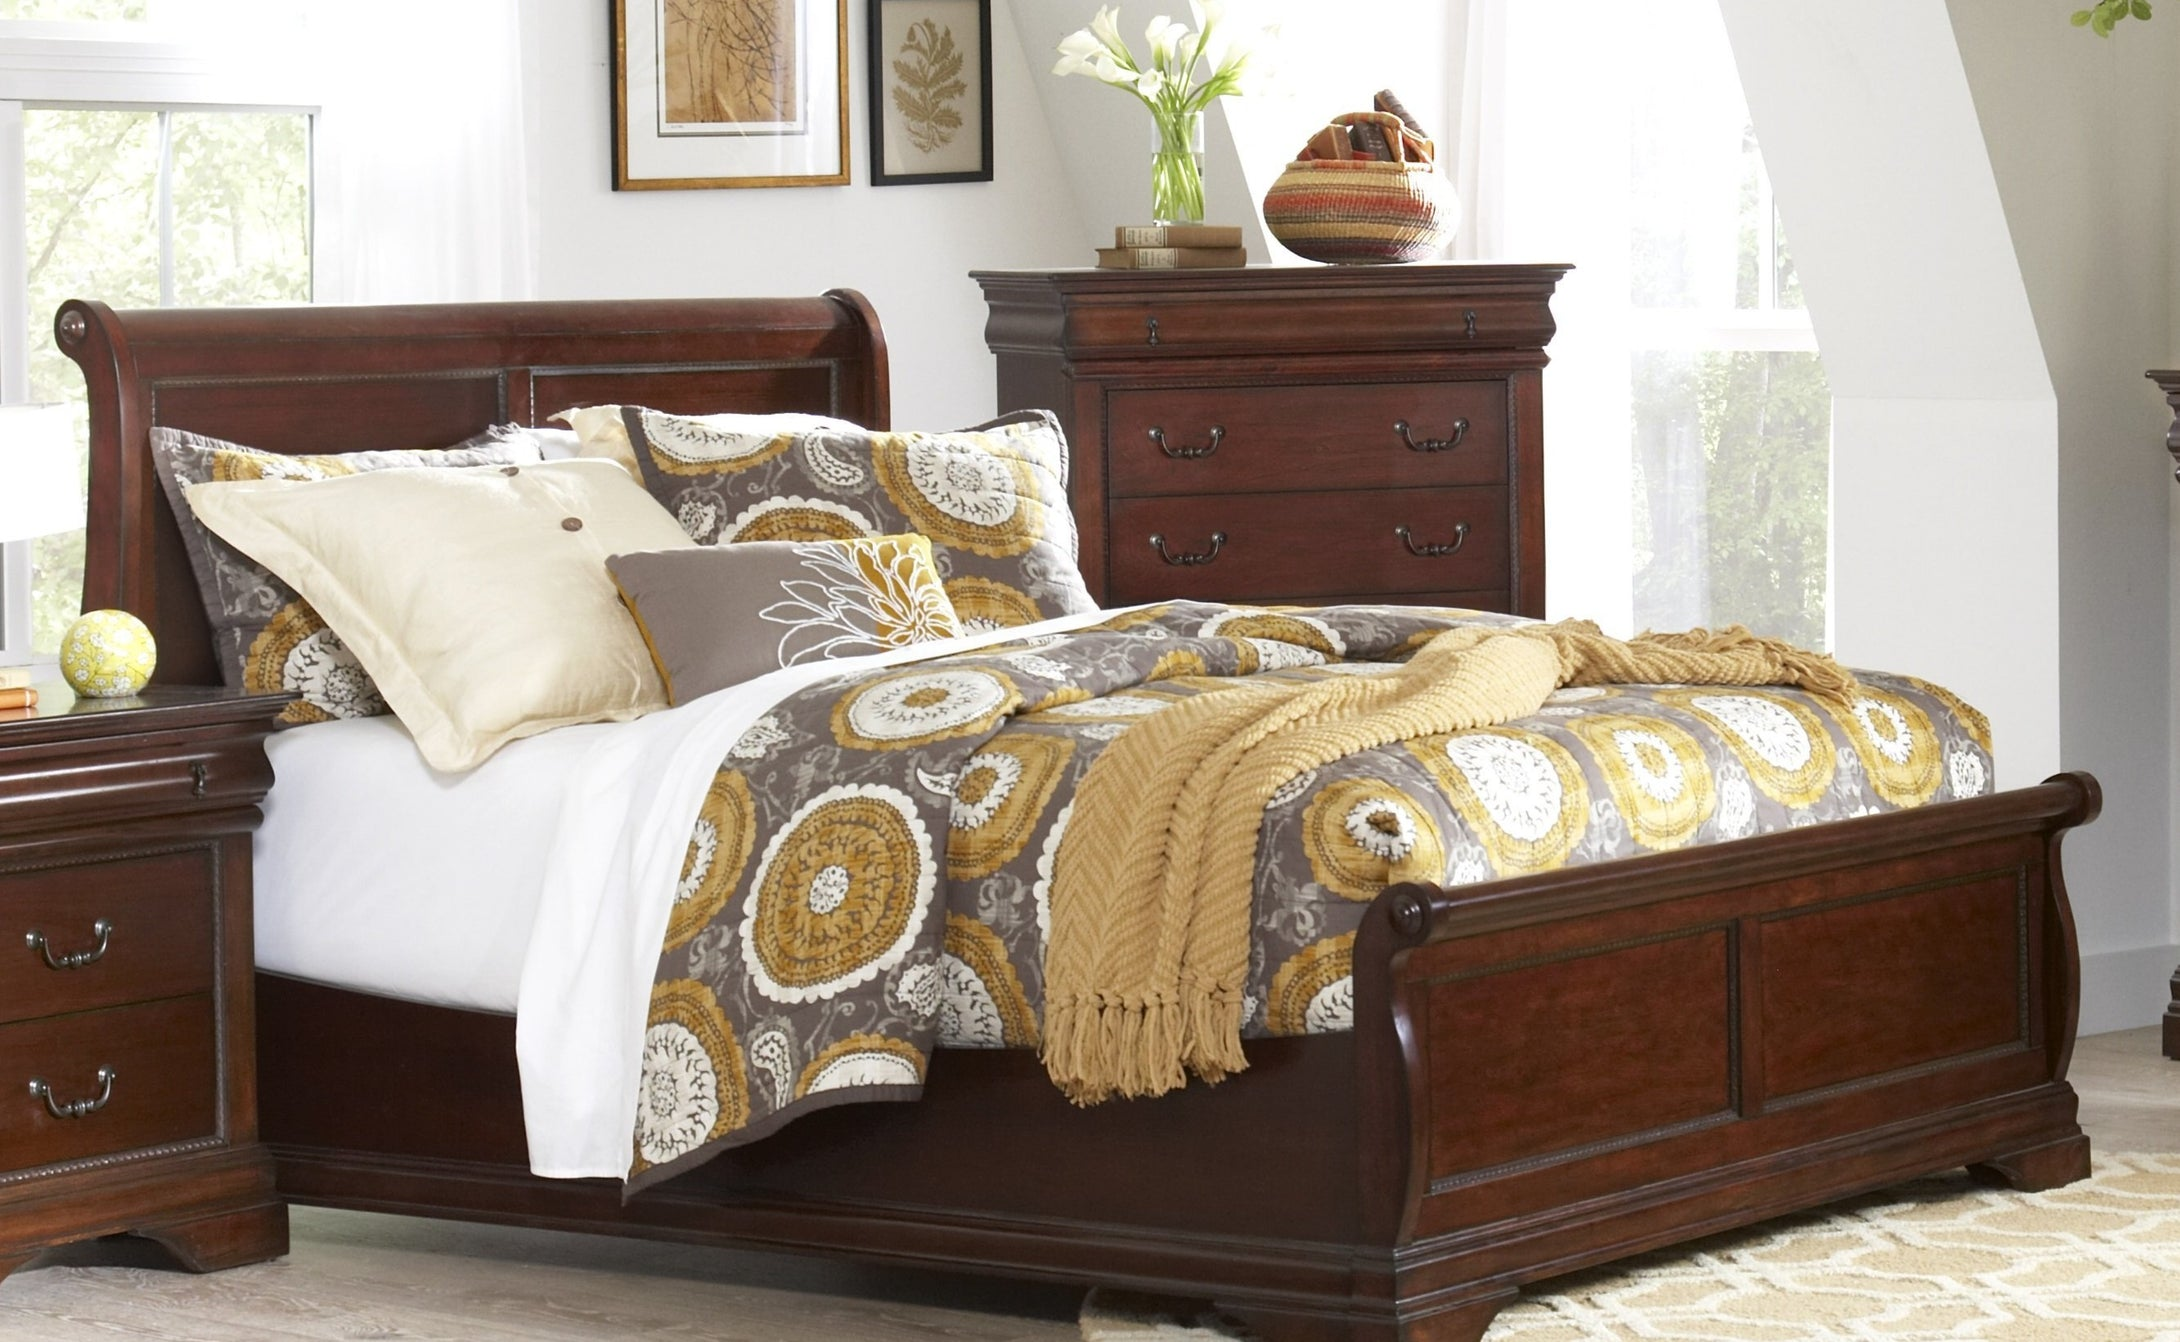 Chateau Cherry Queen Low Profile Sleigh Bed by Elements Furniture - Cox Furniture and Flooring